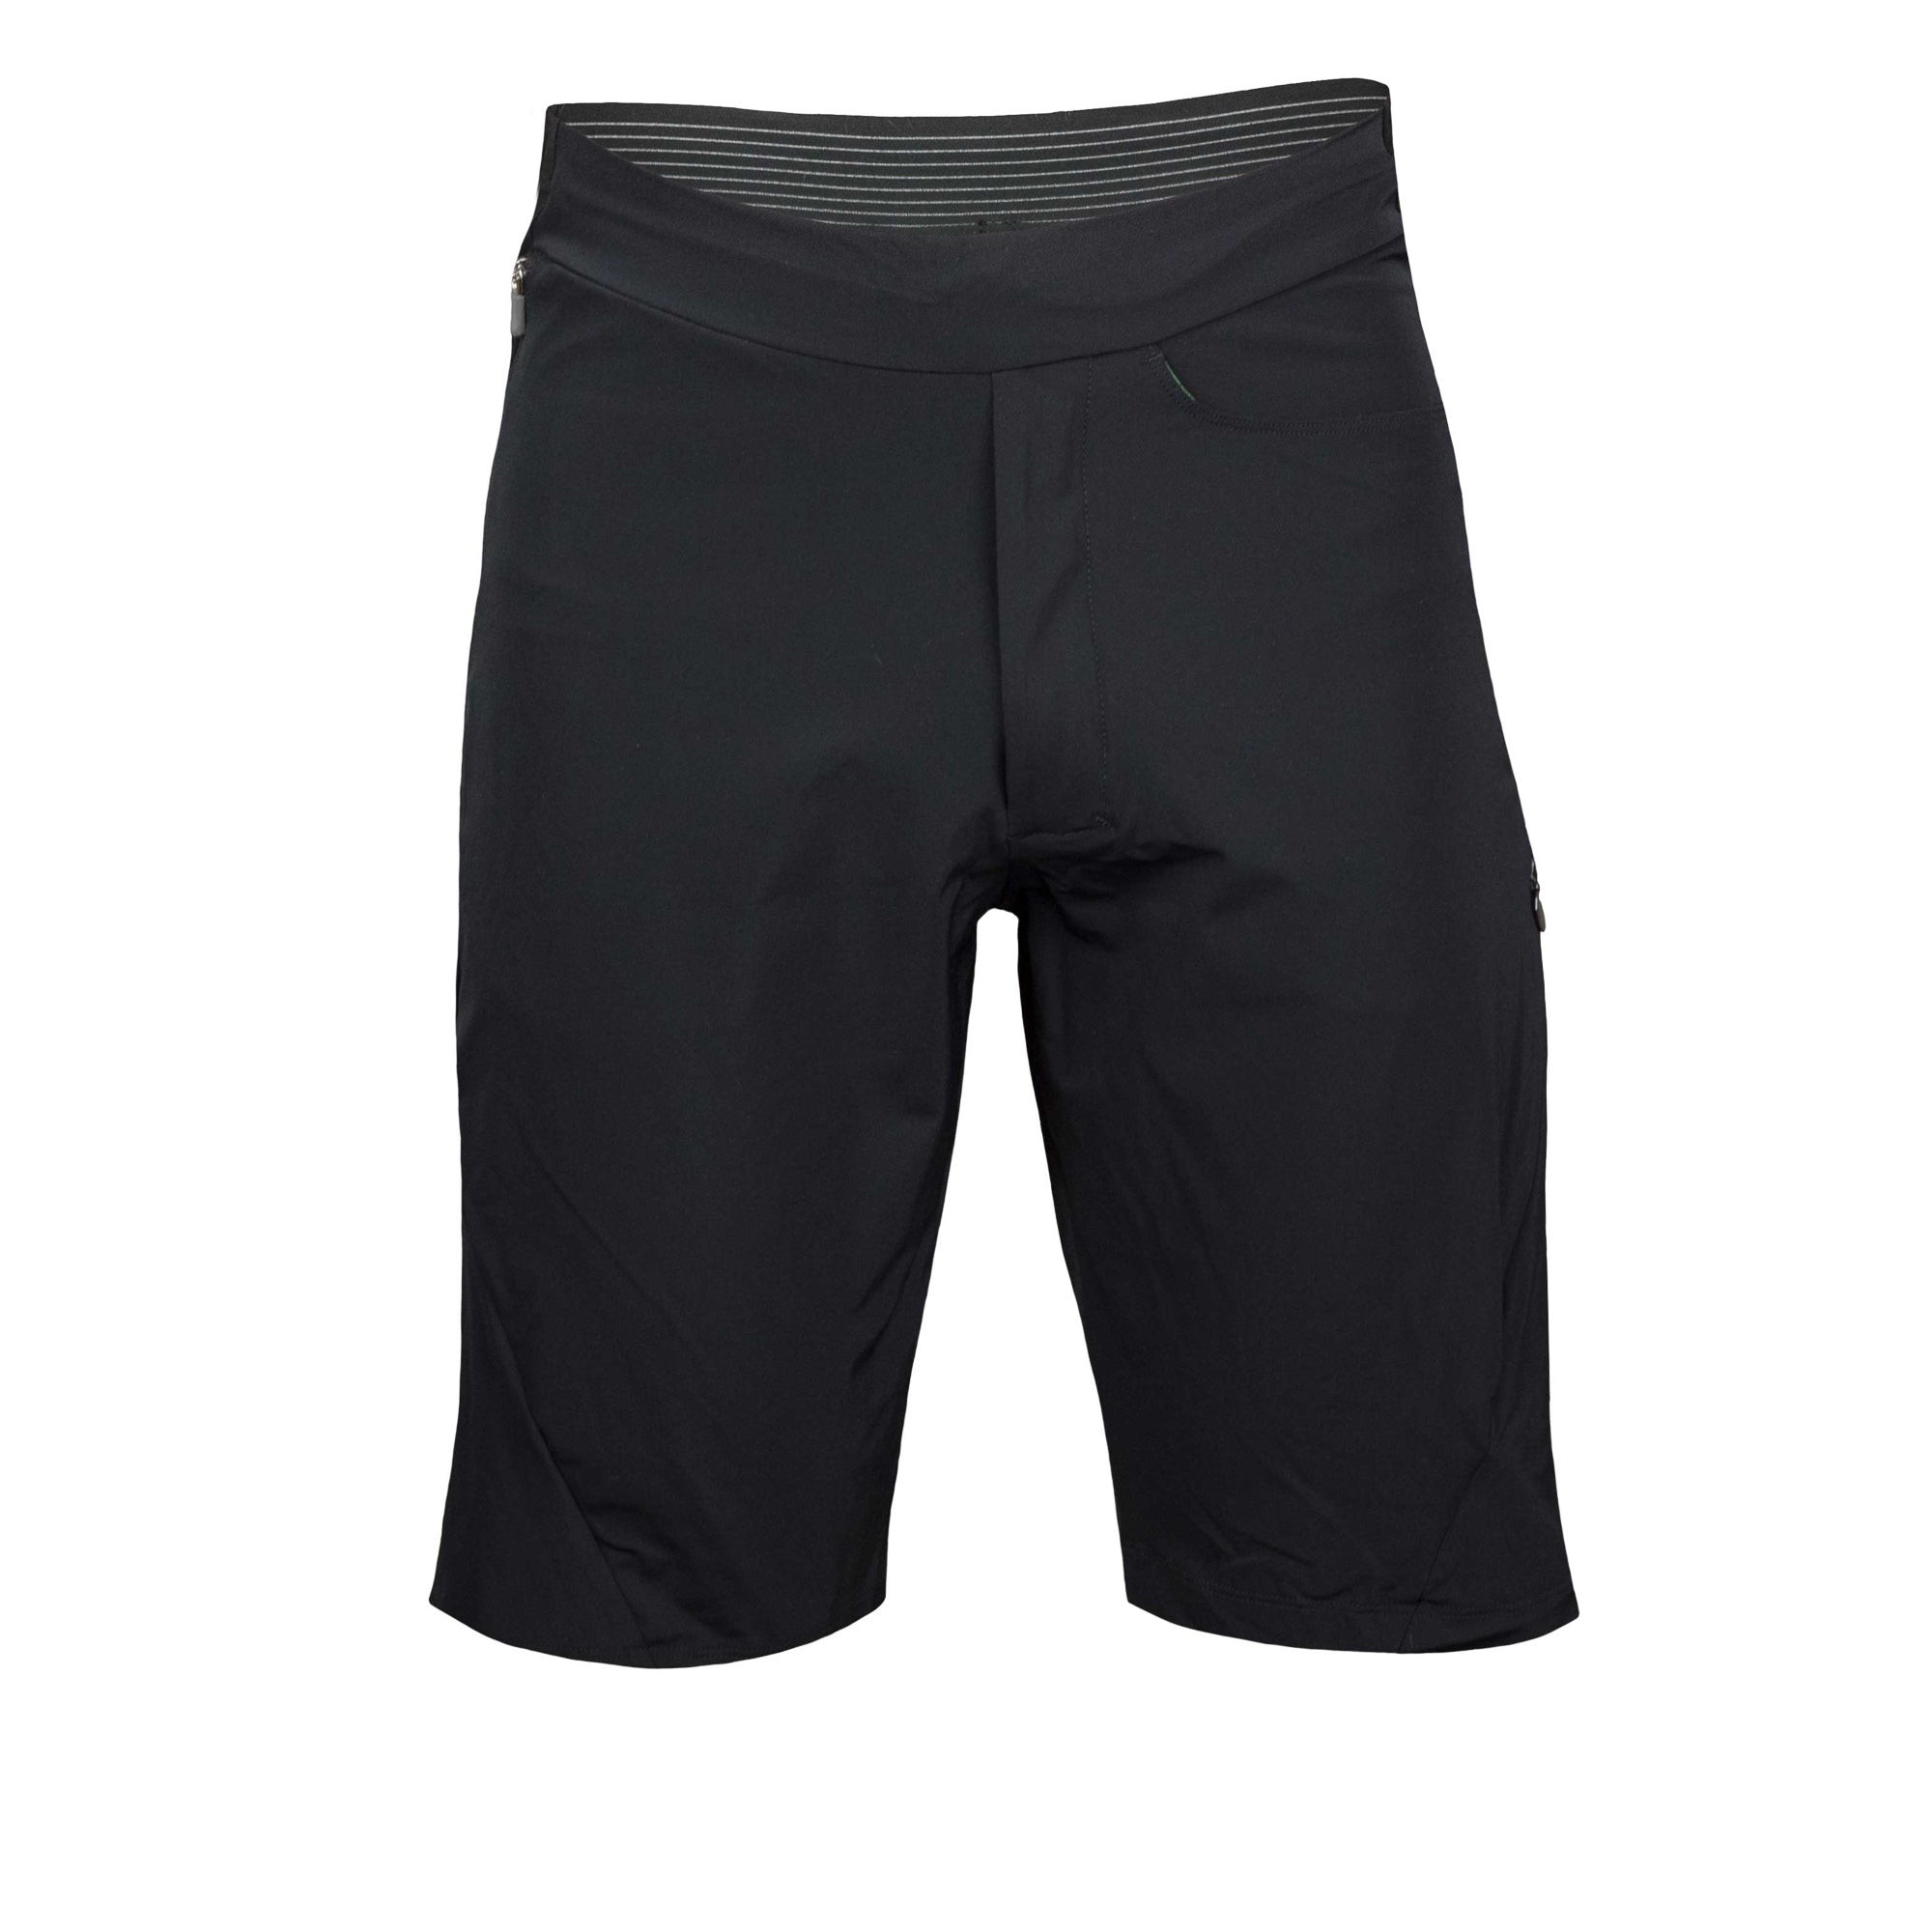 Q36.5 Active Shorts - Crossover Equipment